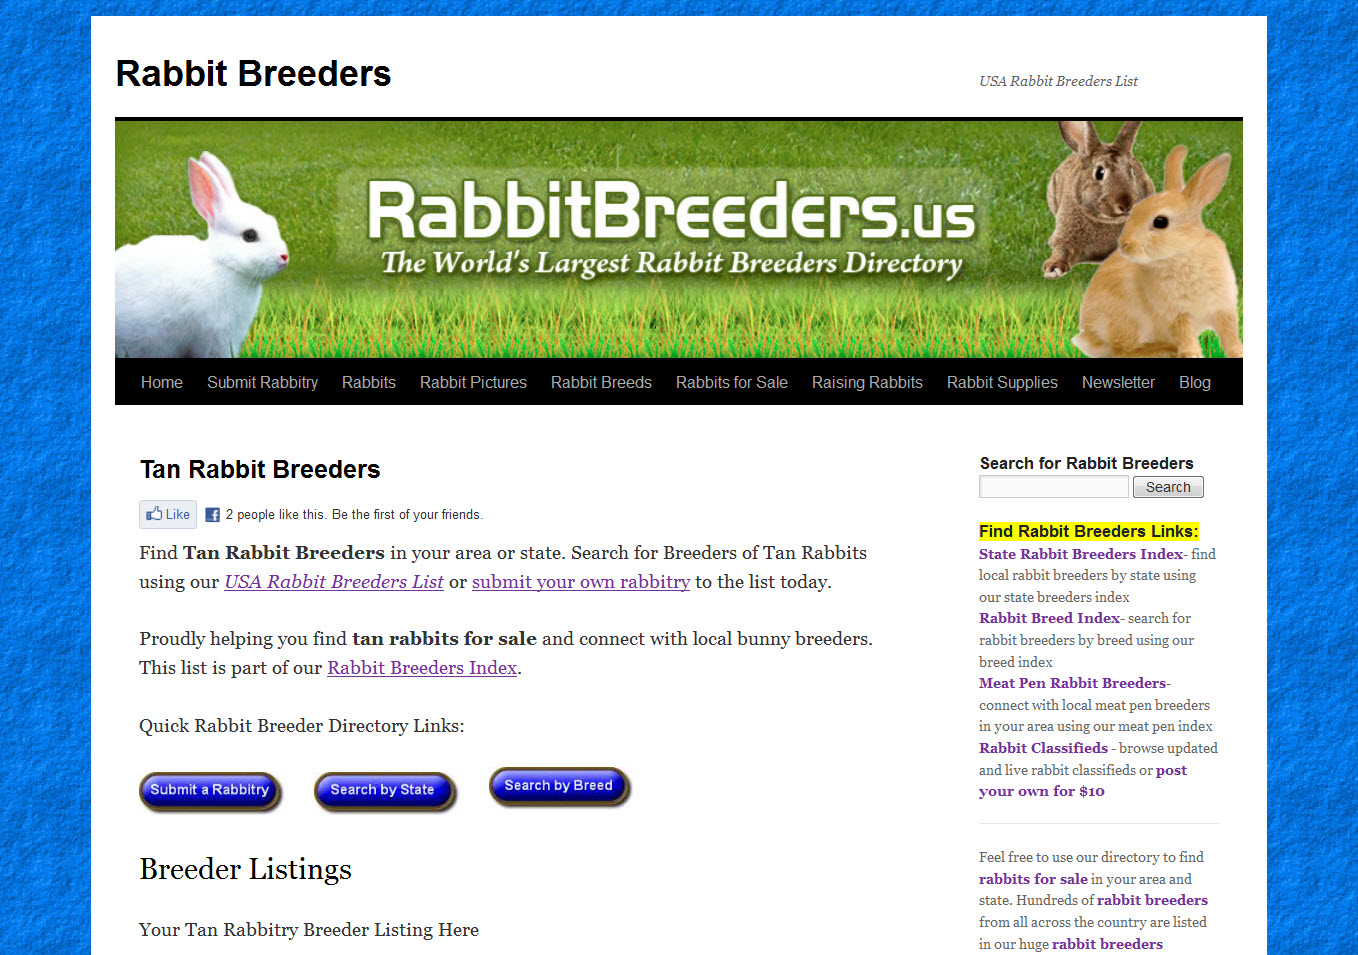 Tan Rabbit Breeders